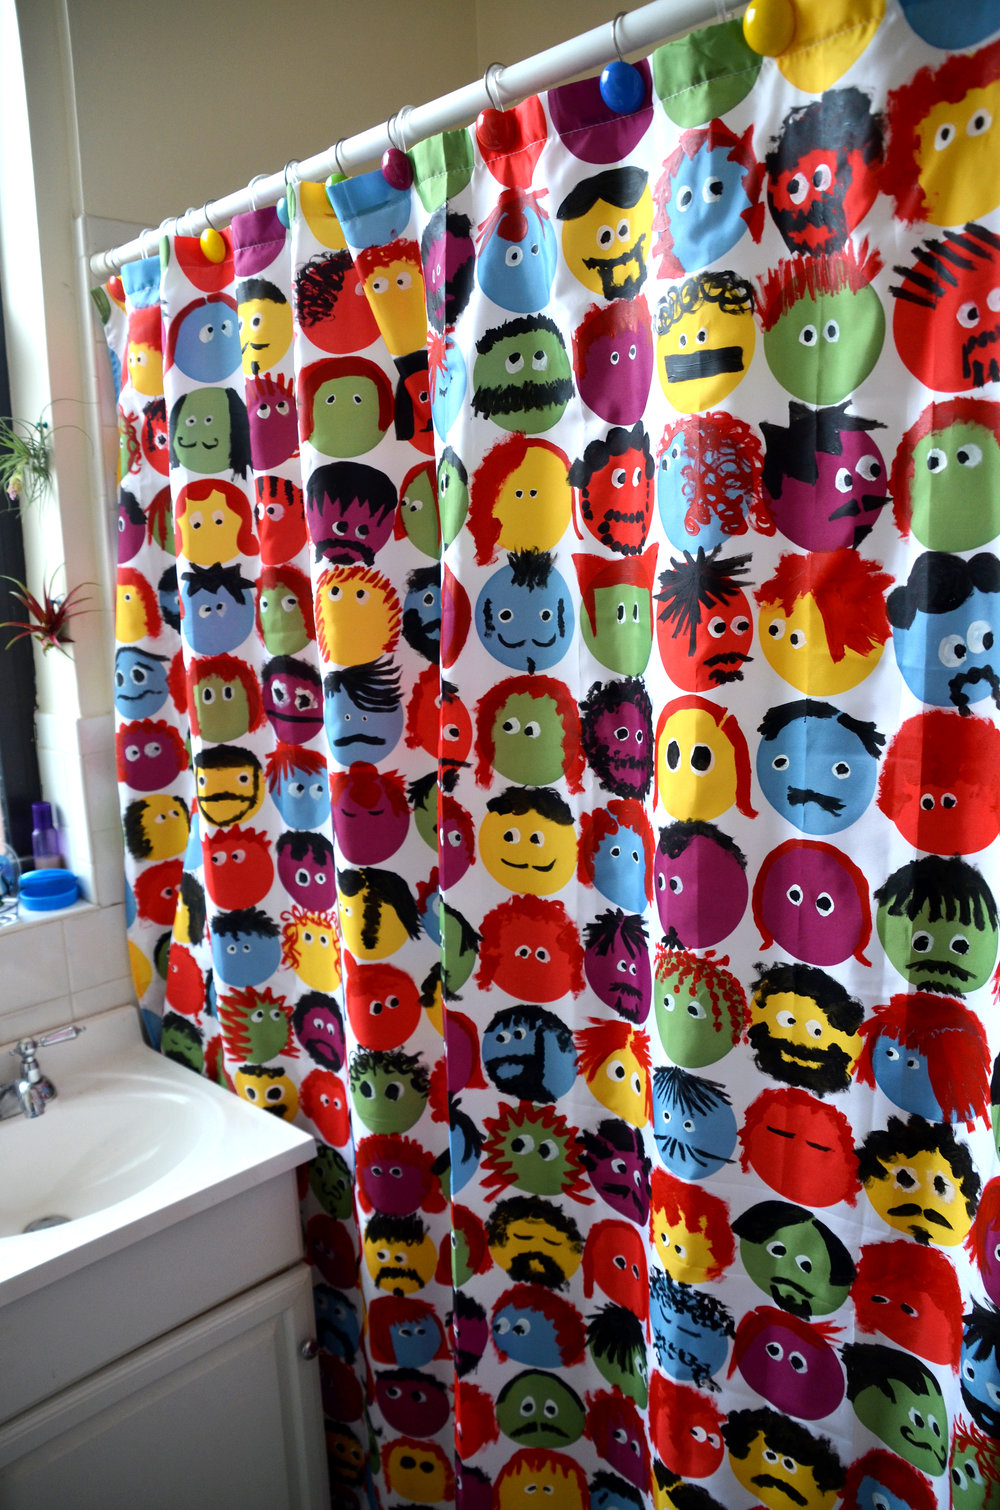 D&M Shower Curtain